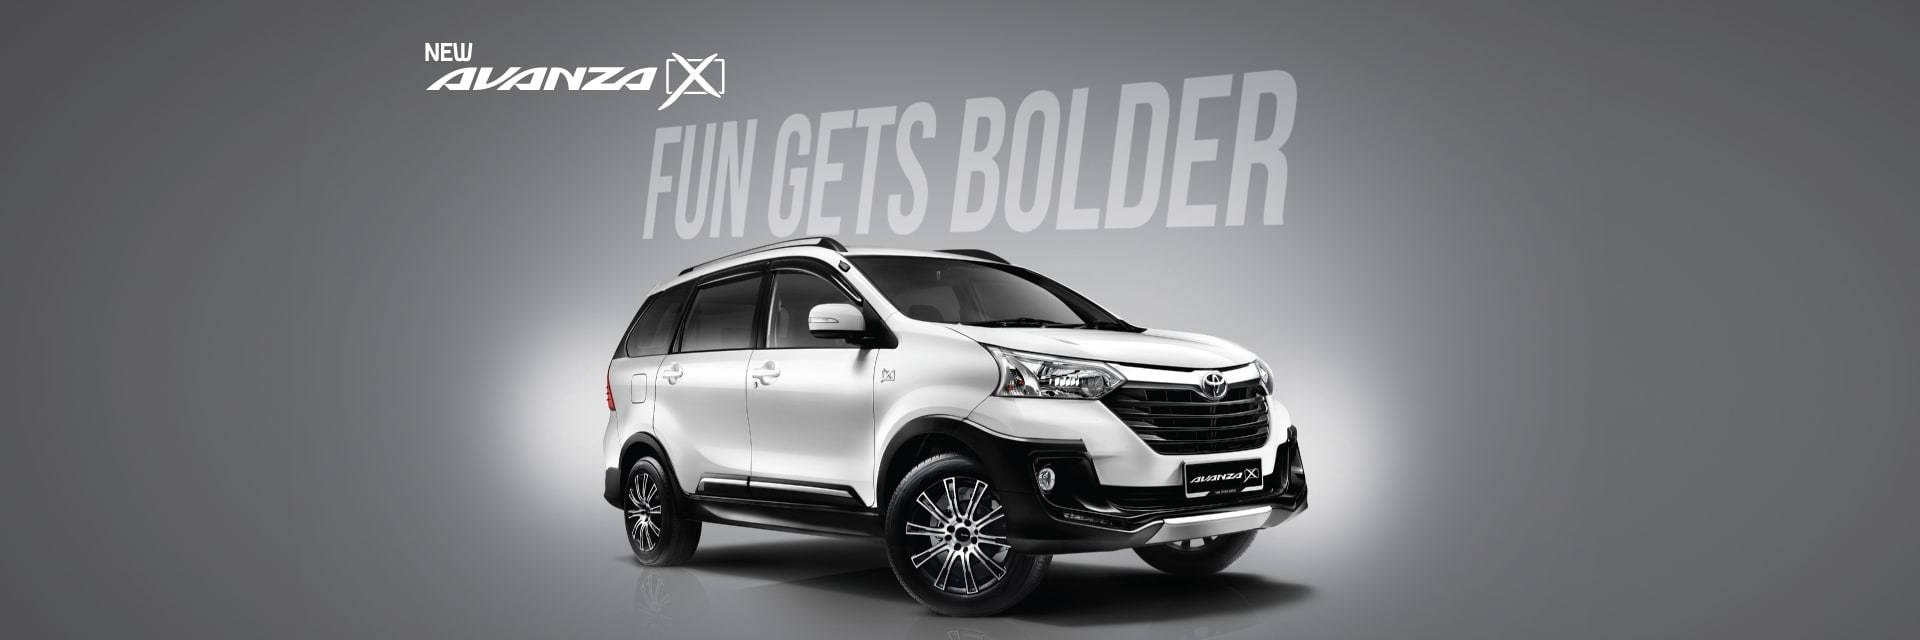 Add some zest to your life with the new Avanza X, complete with overfenders  for a more rugged look and an efficient DUAL ...